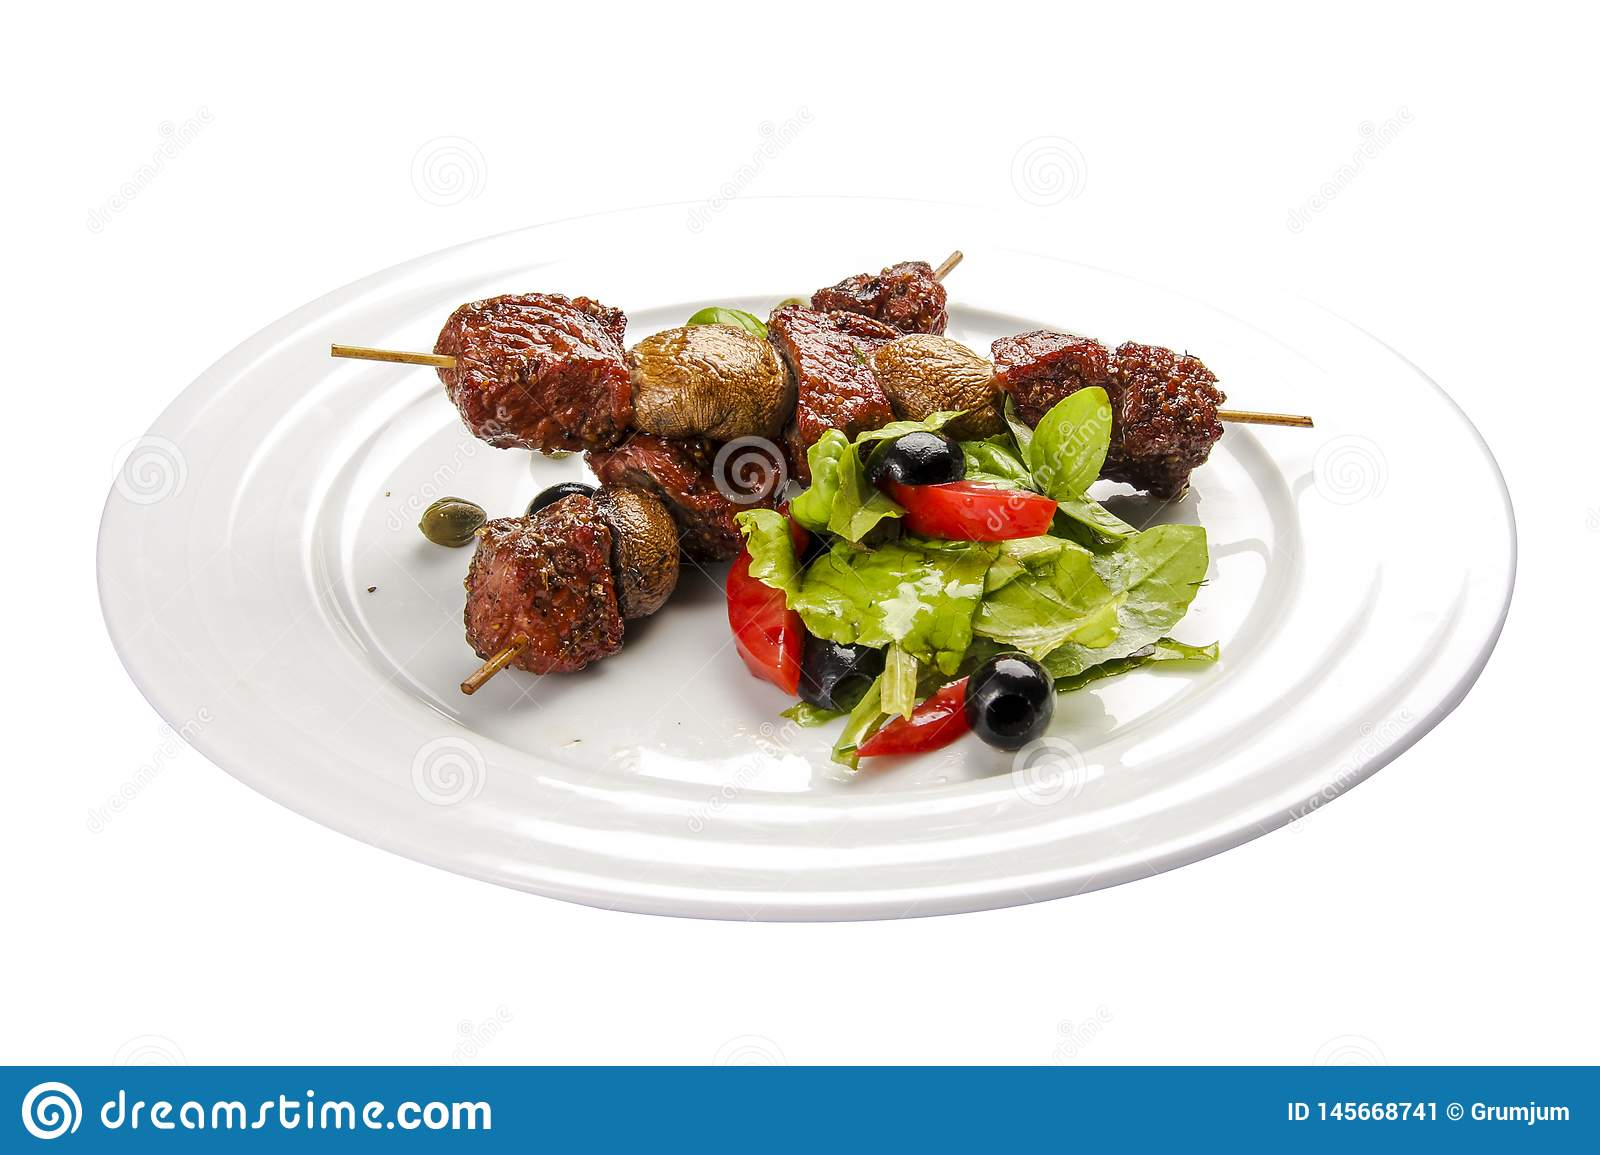 Suvlaki. A traditional Greek dish.